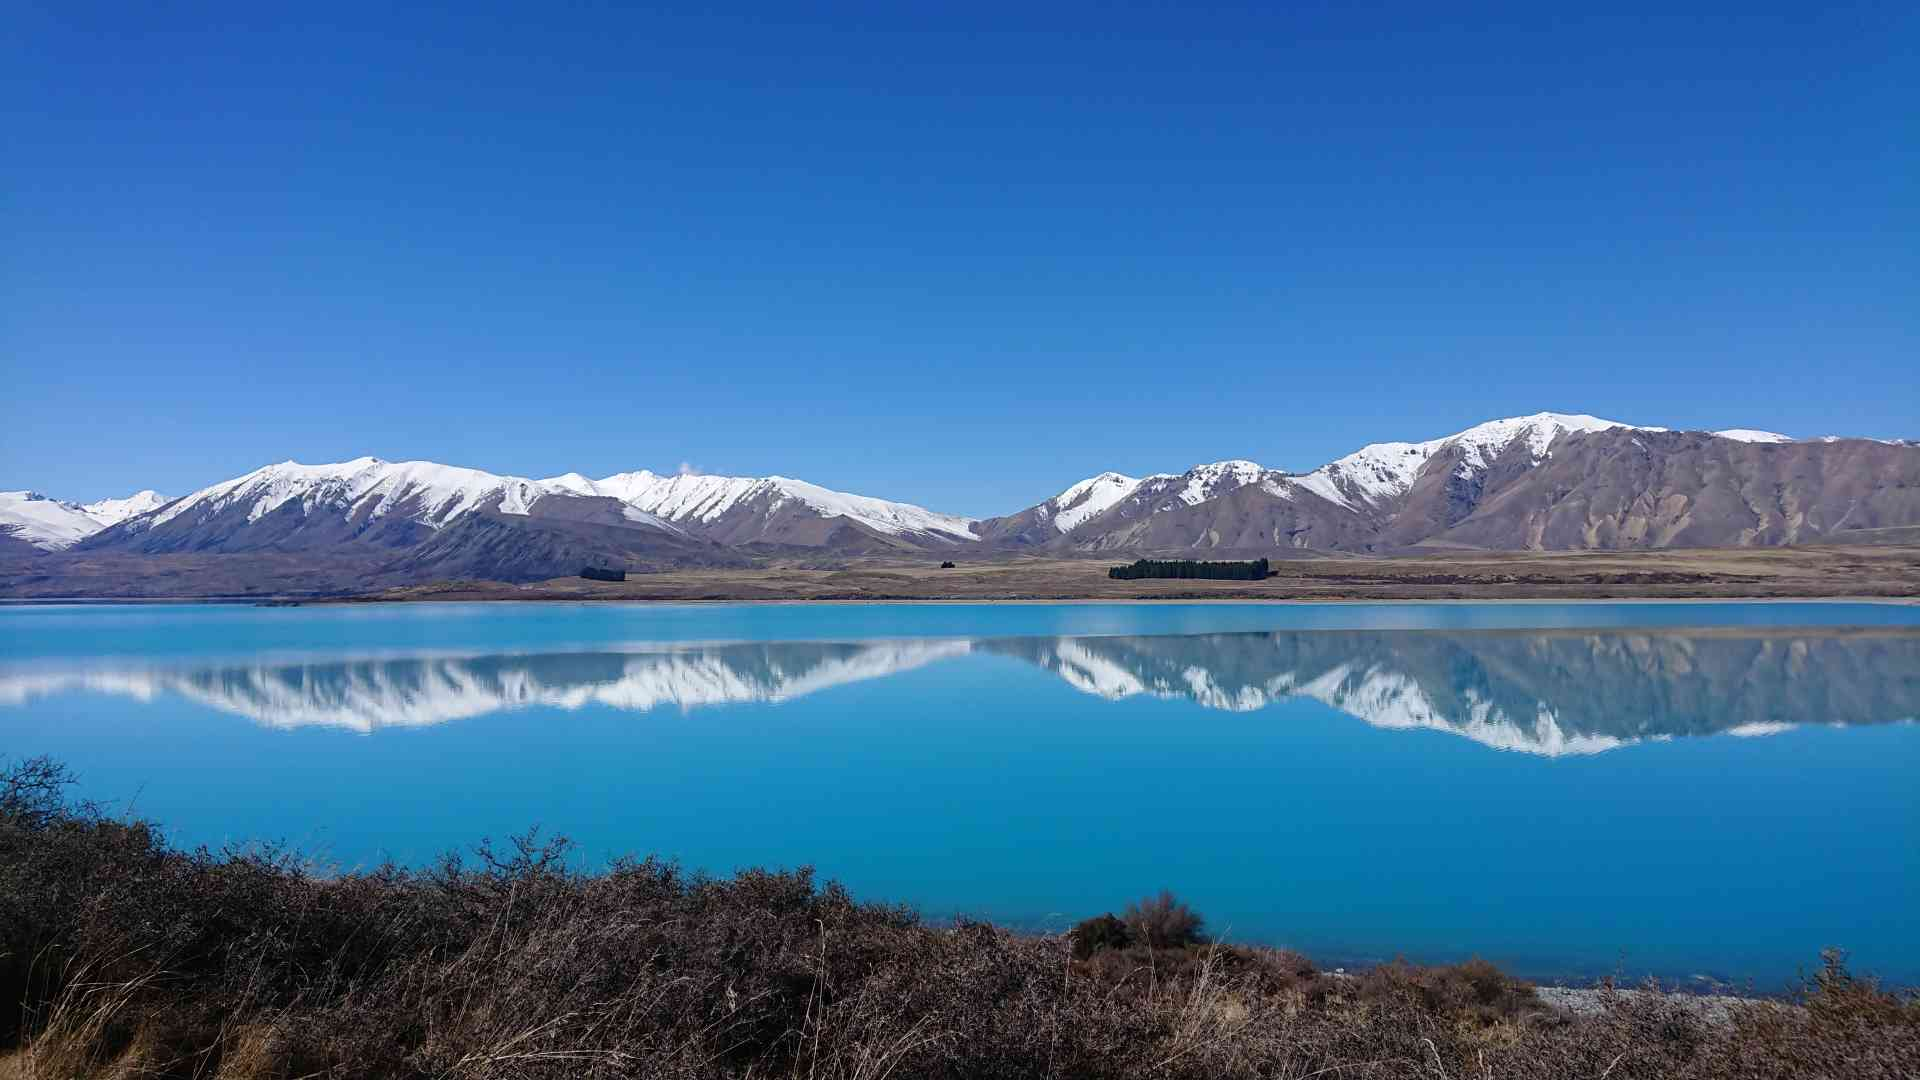 Lake Tekapo, New Zealand by Priscilla Aster